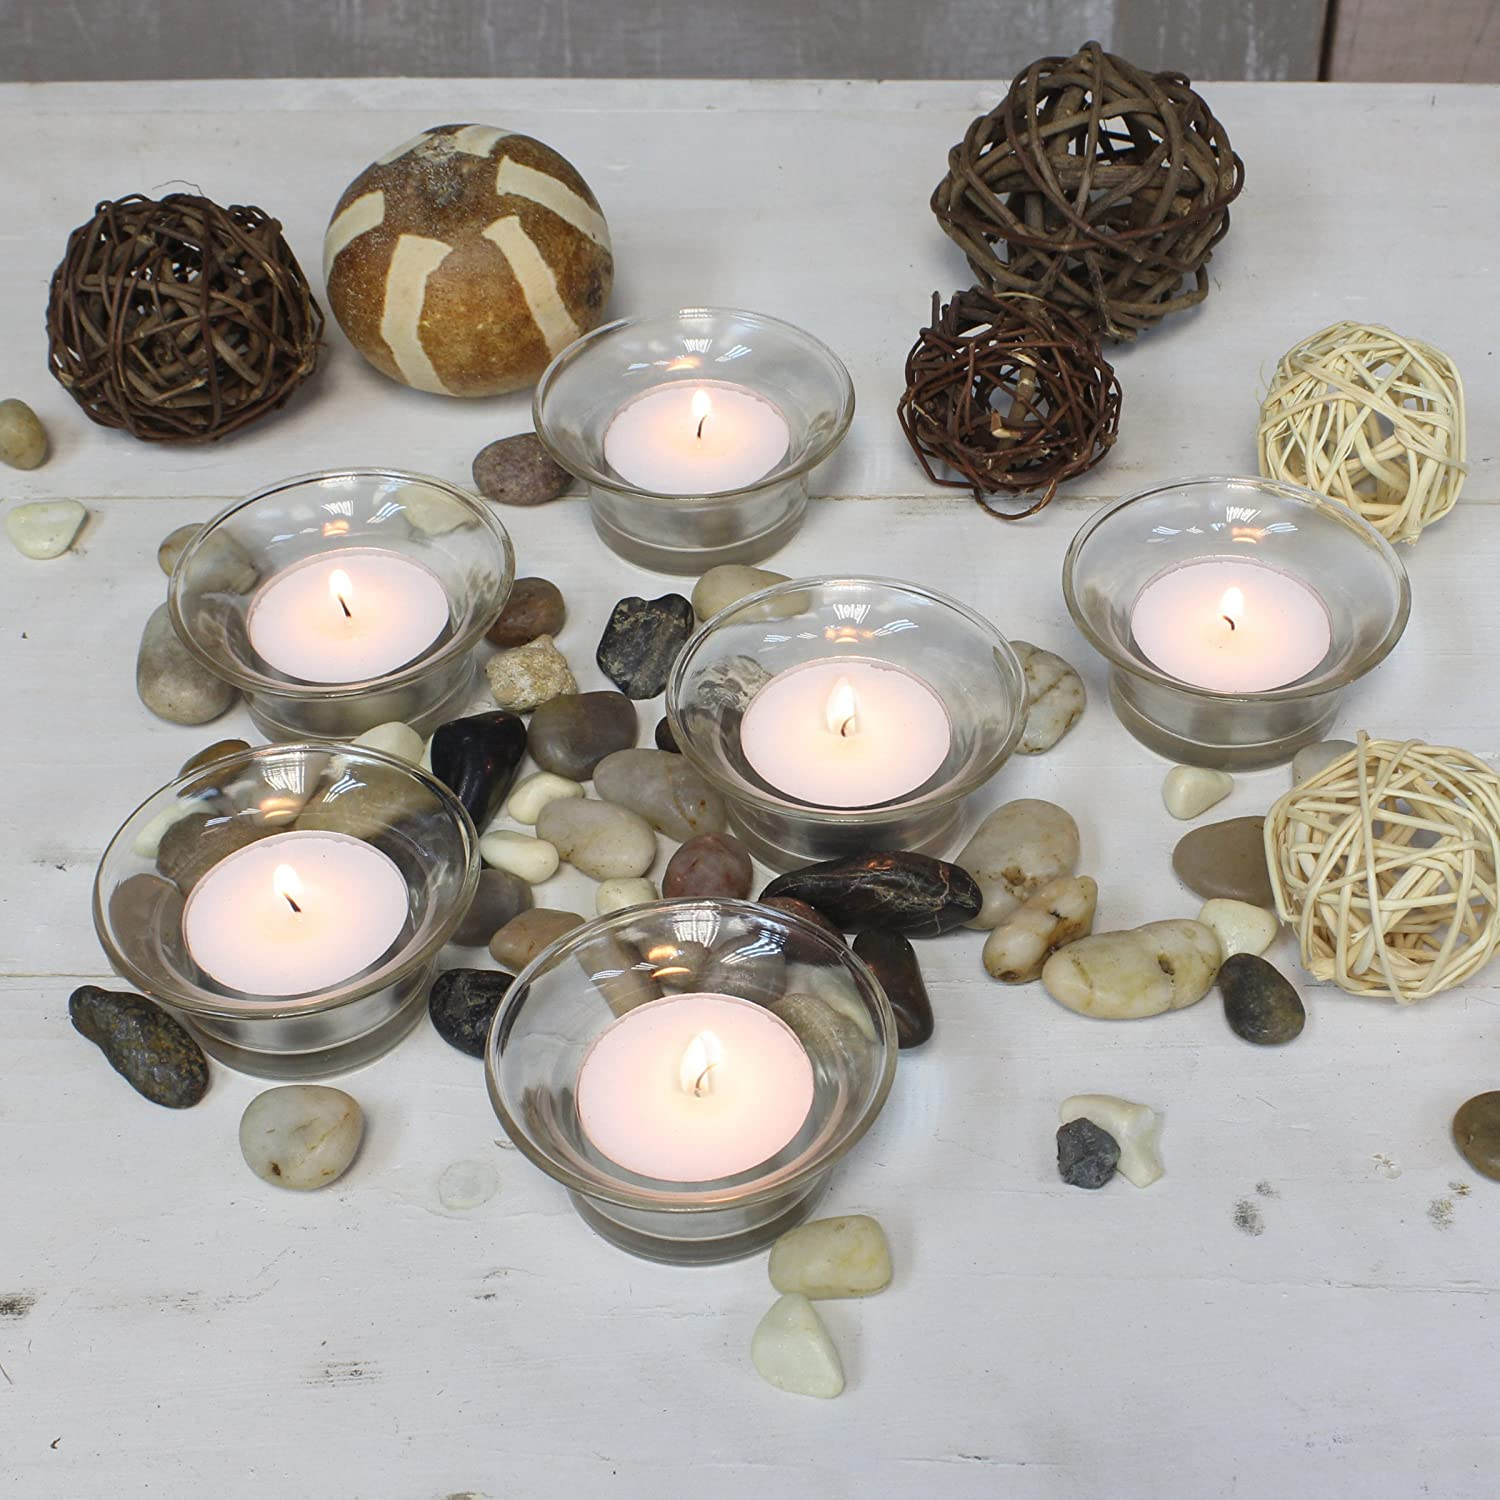 or Any Special Occasion Stonebriar Decorative Clear Glass Tulip Tea Light Candle Holder Set Housearmings 24 Piece Bulk Set Birthdays Elegant Party Decorations for Weddings